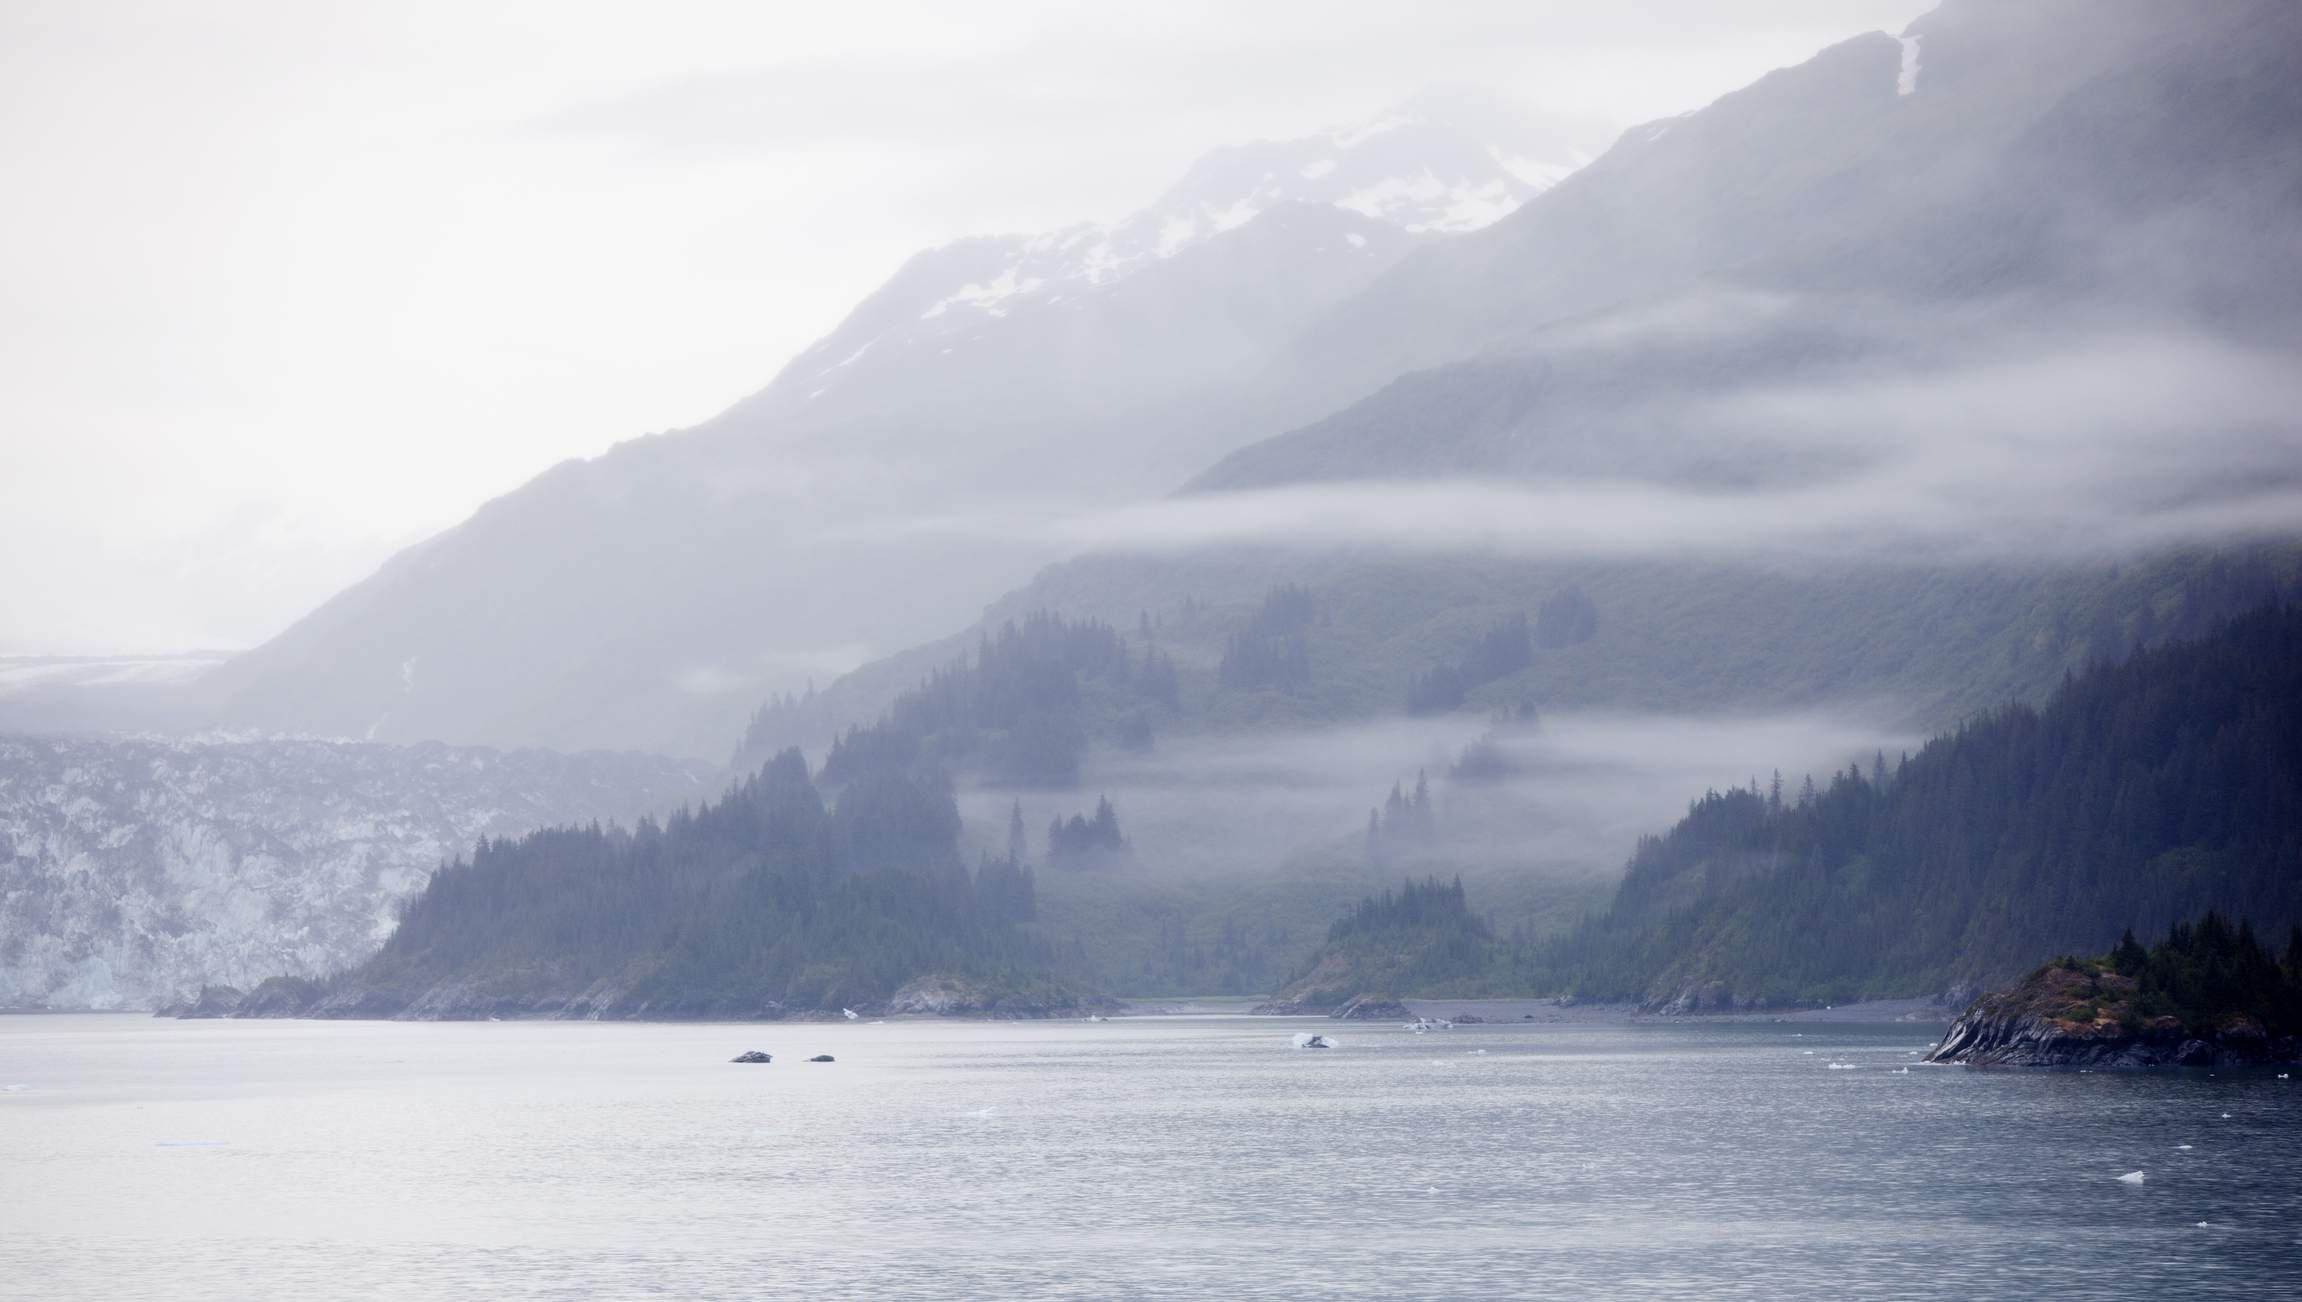 Misty Alaskan landscape in Yakutat Bay near Hubbard Glacier. The ice face of the glacier can be seen to the left of the image.